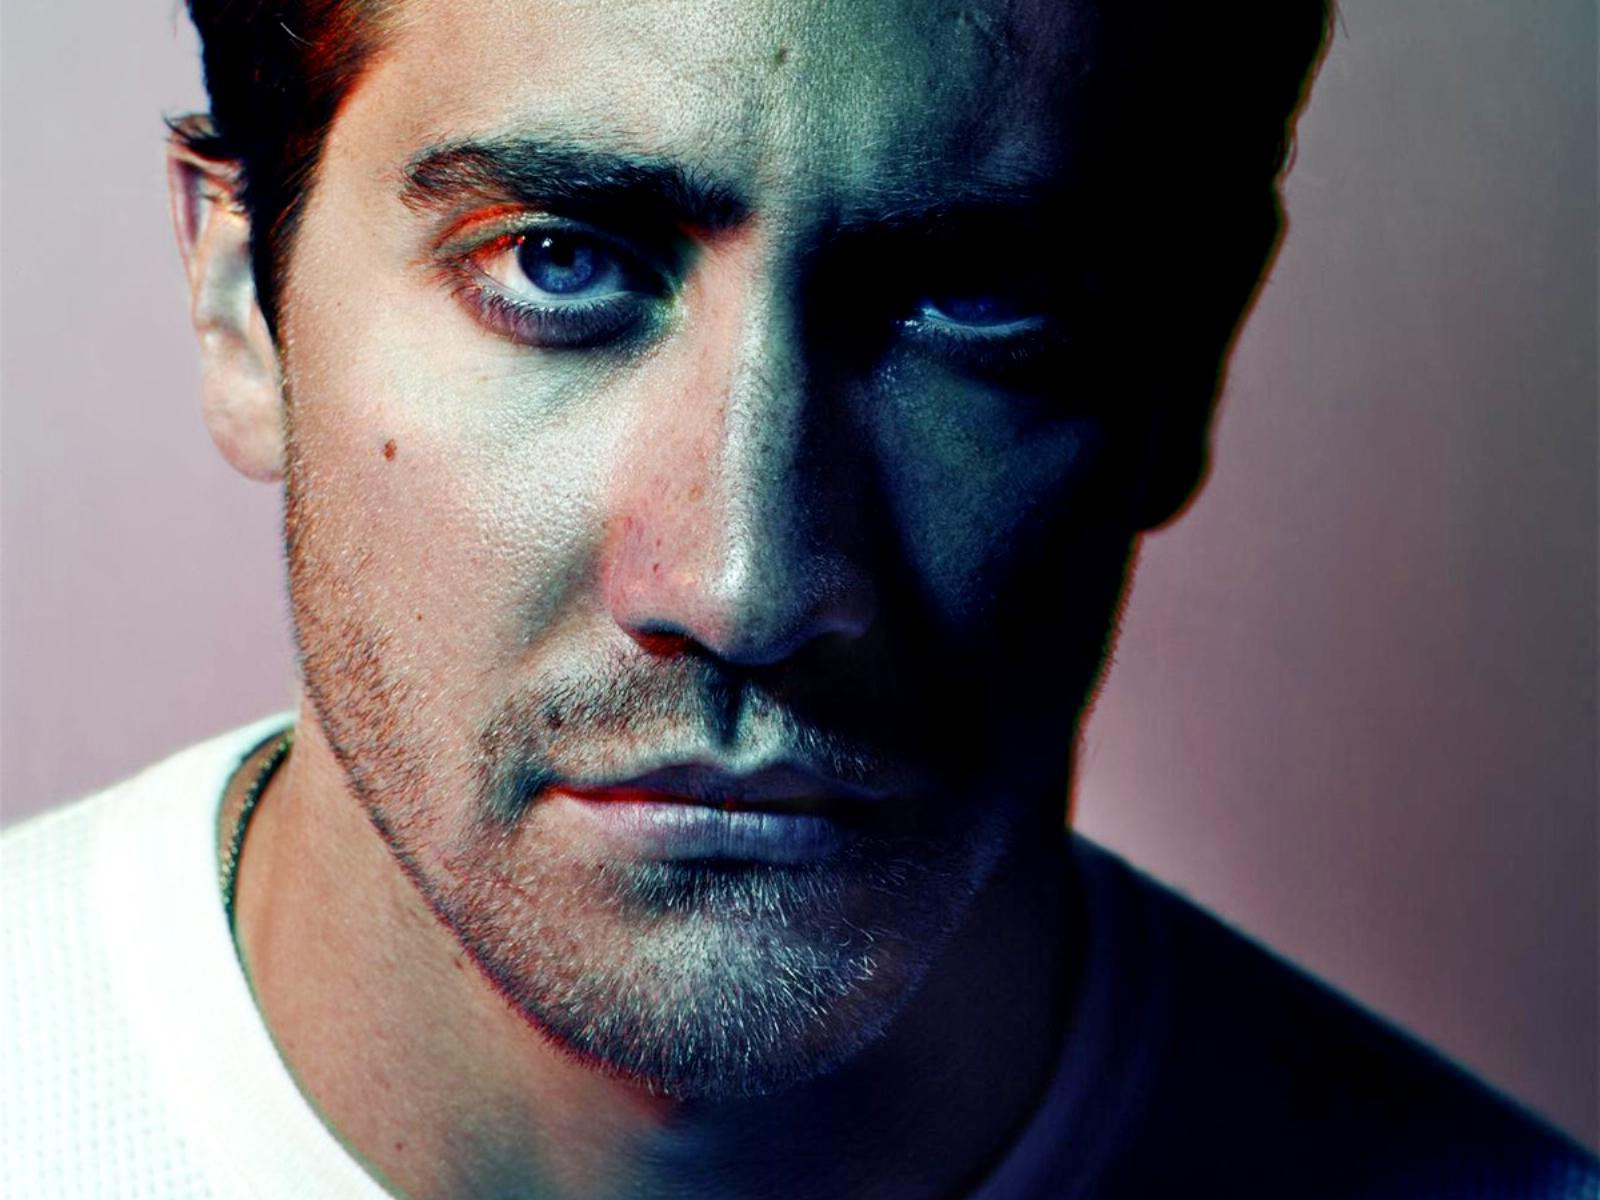 jake gyllenhaal face wallpaper 67019